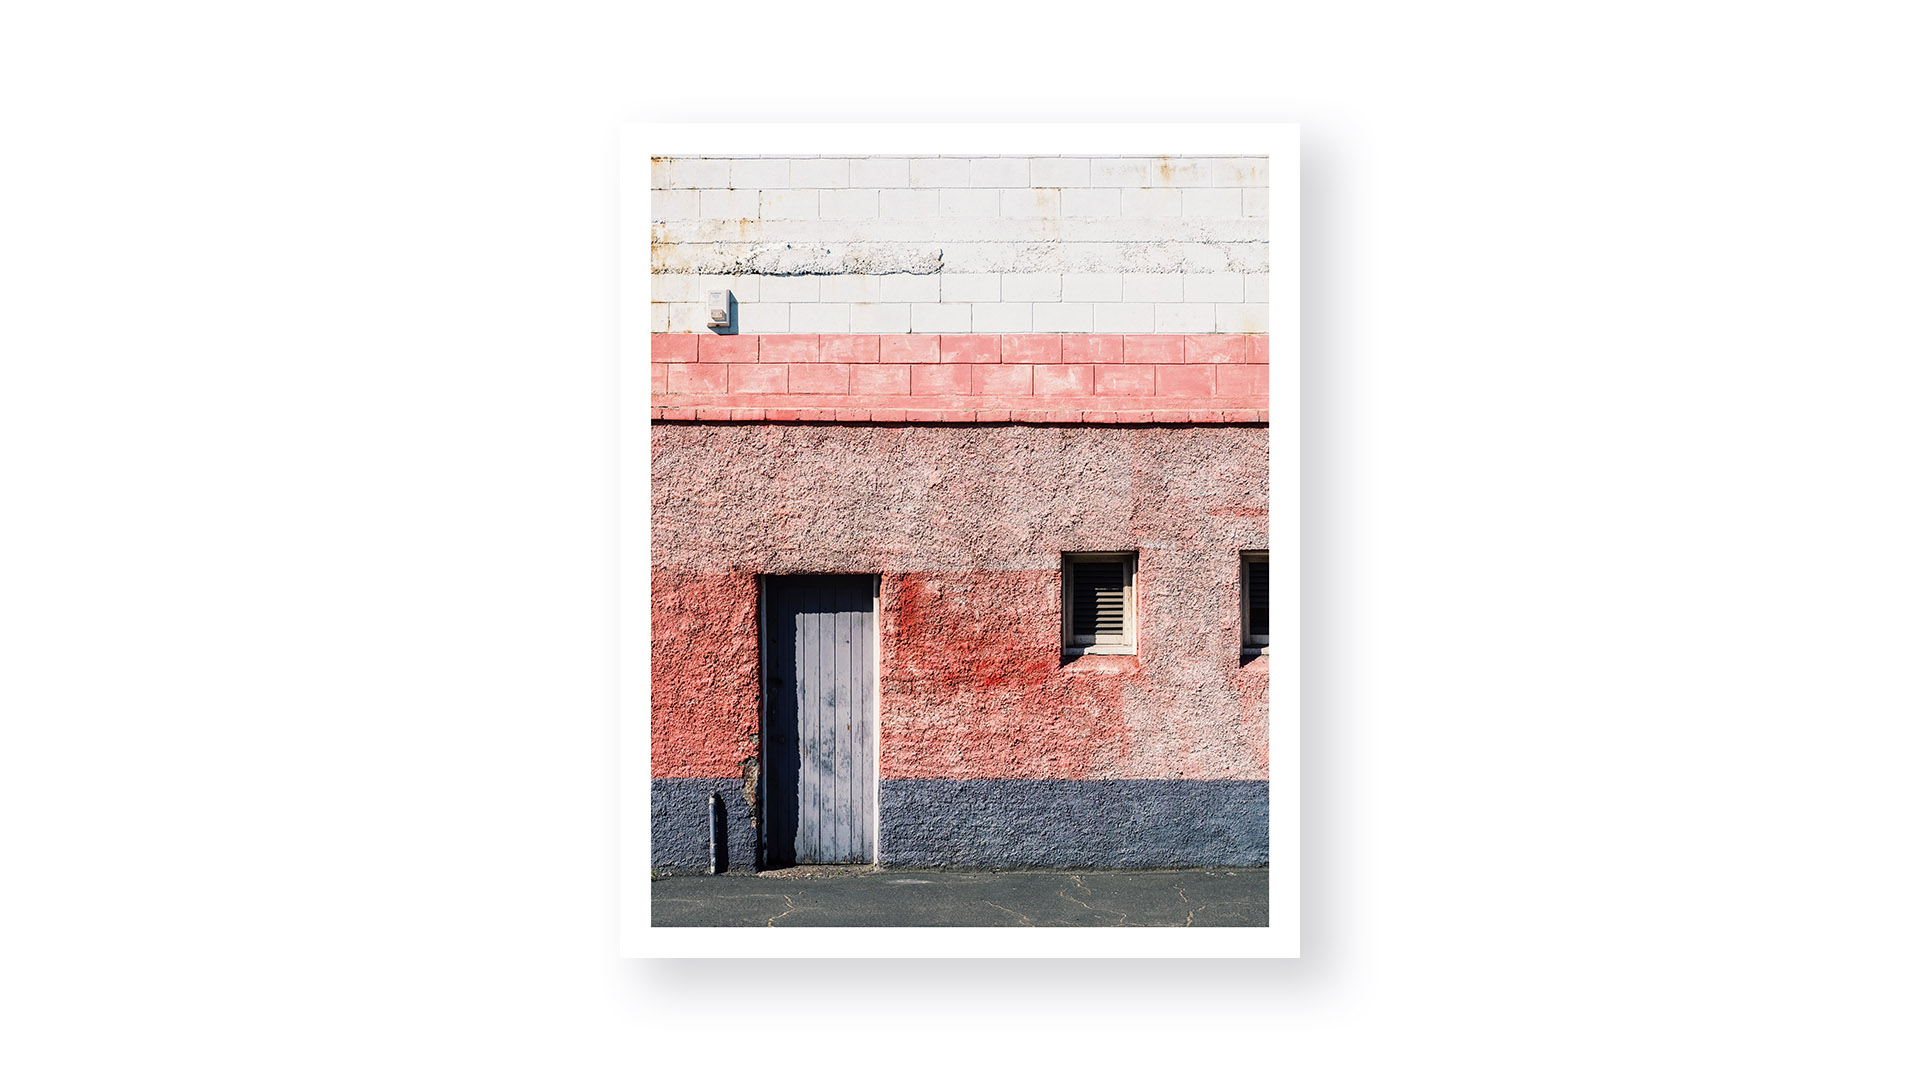 A photo series portraying the grunge and texture of various walls in New Zealand. A study in texture and balance